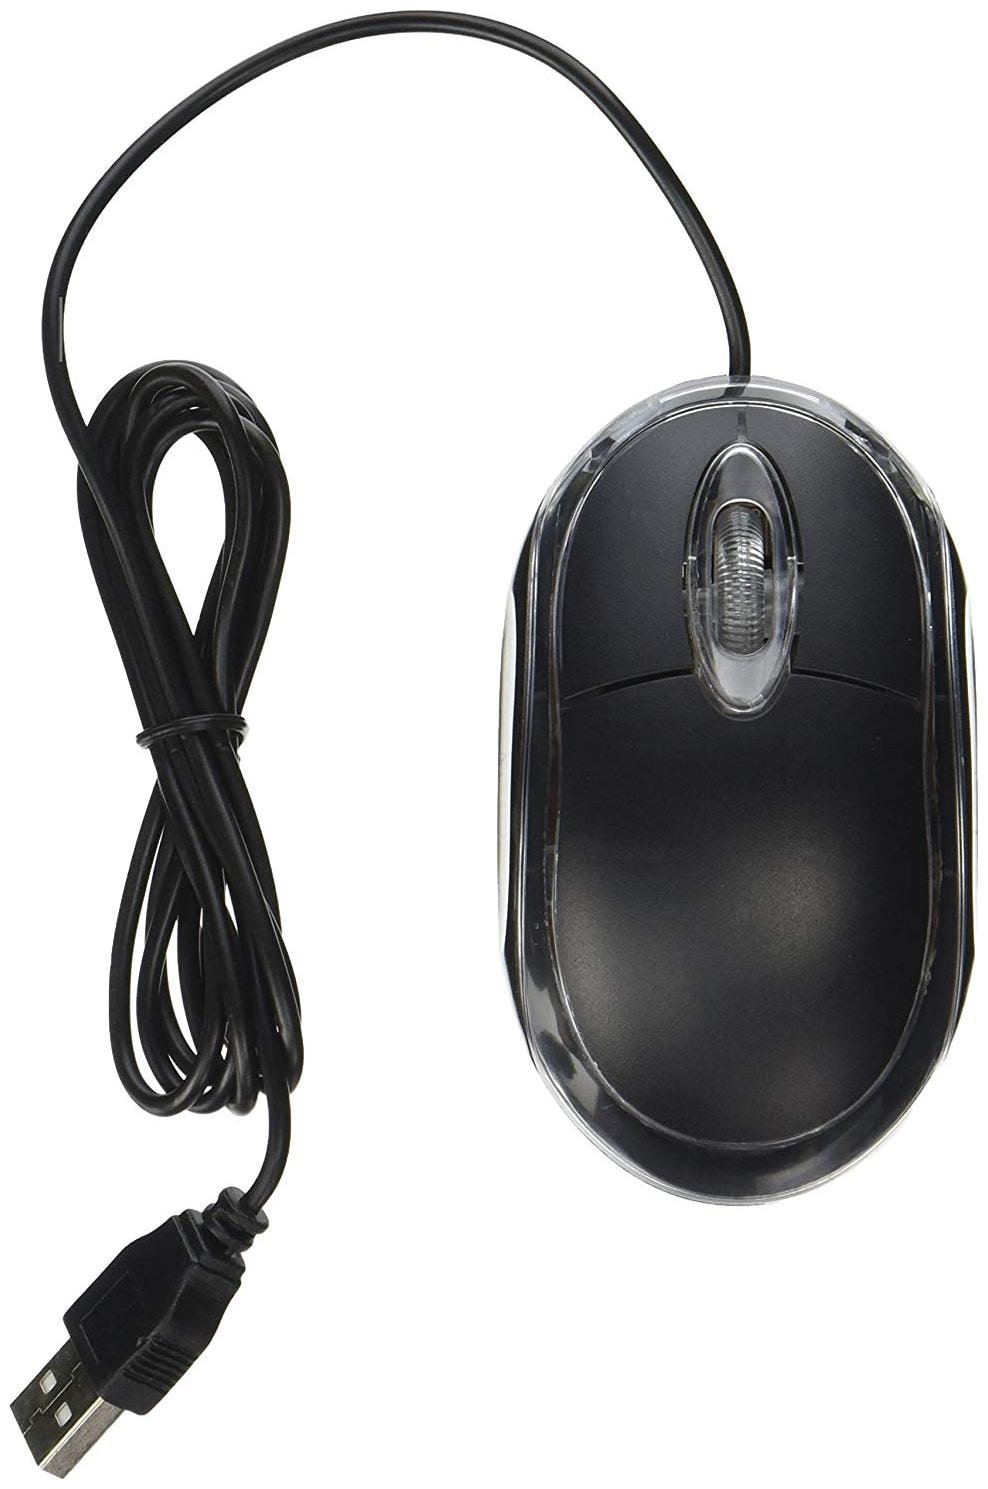 Shopline A1 Wired USB Optical Mouse  Black